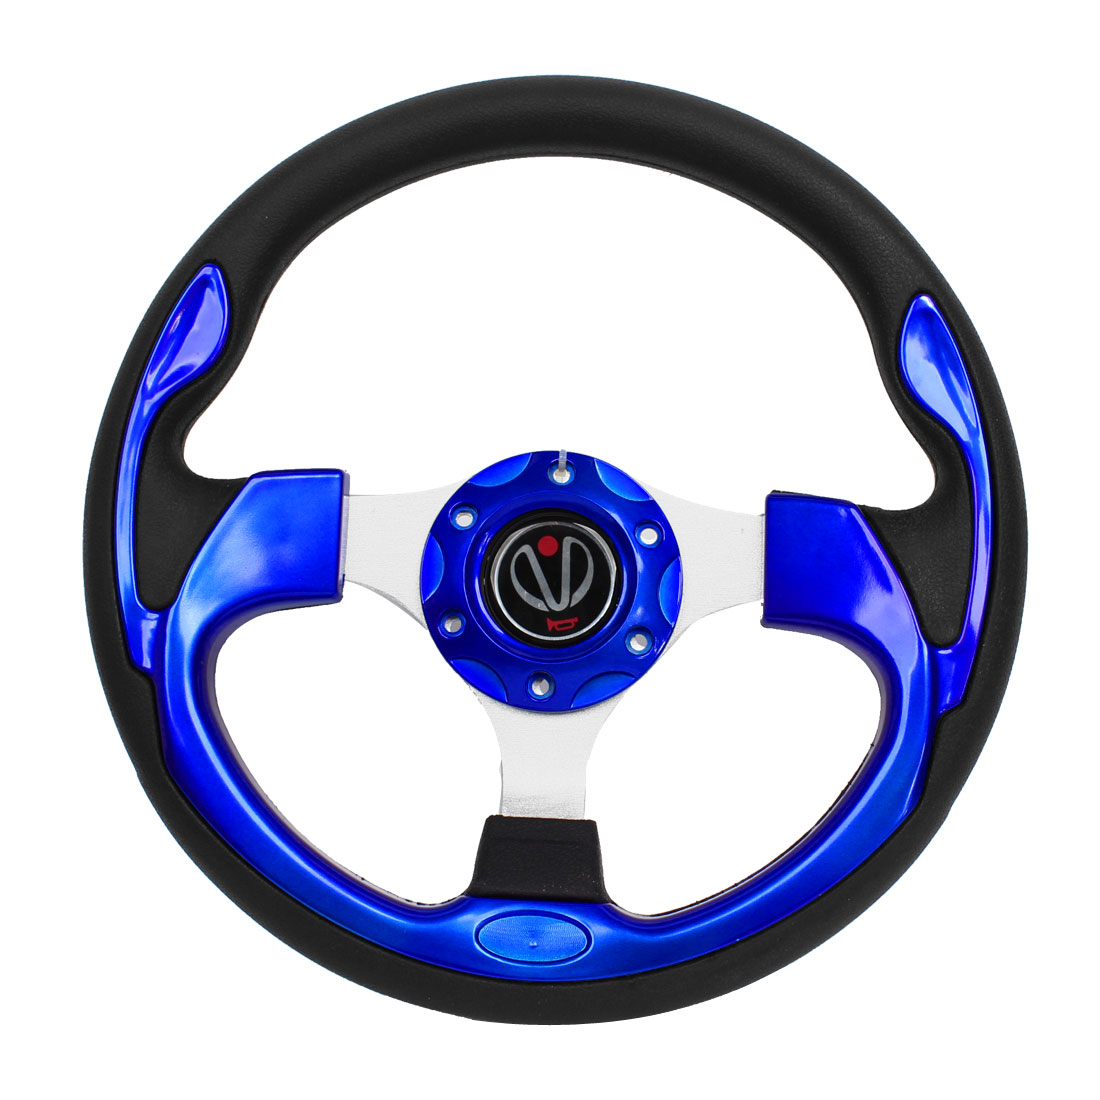 30cm Dia Faux Leather Coated Nonslip Steering Wheel Royal Blue Black for Car